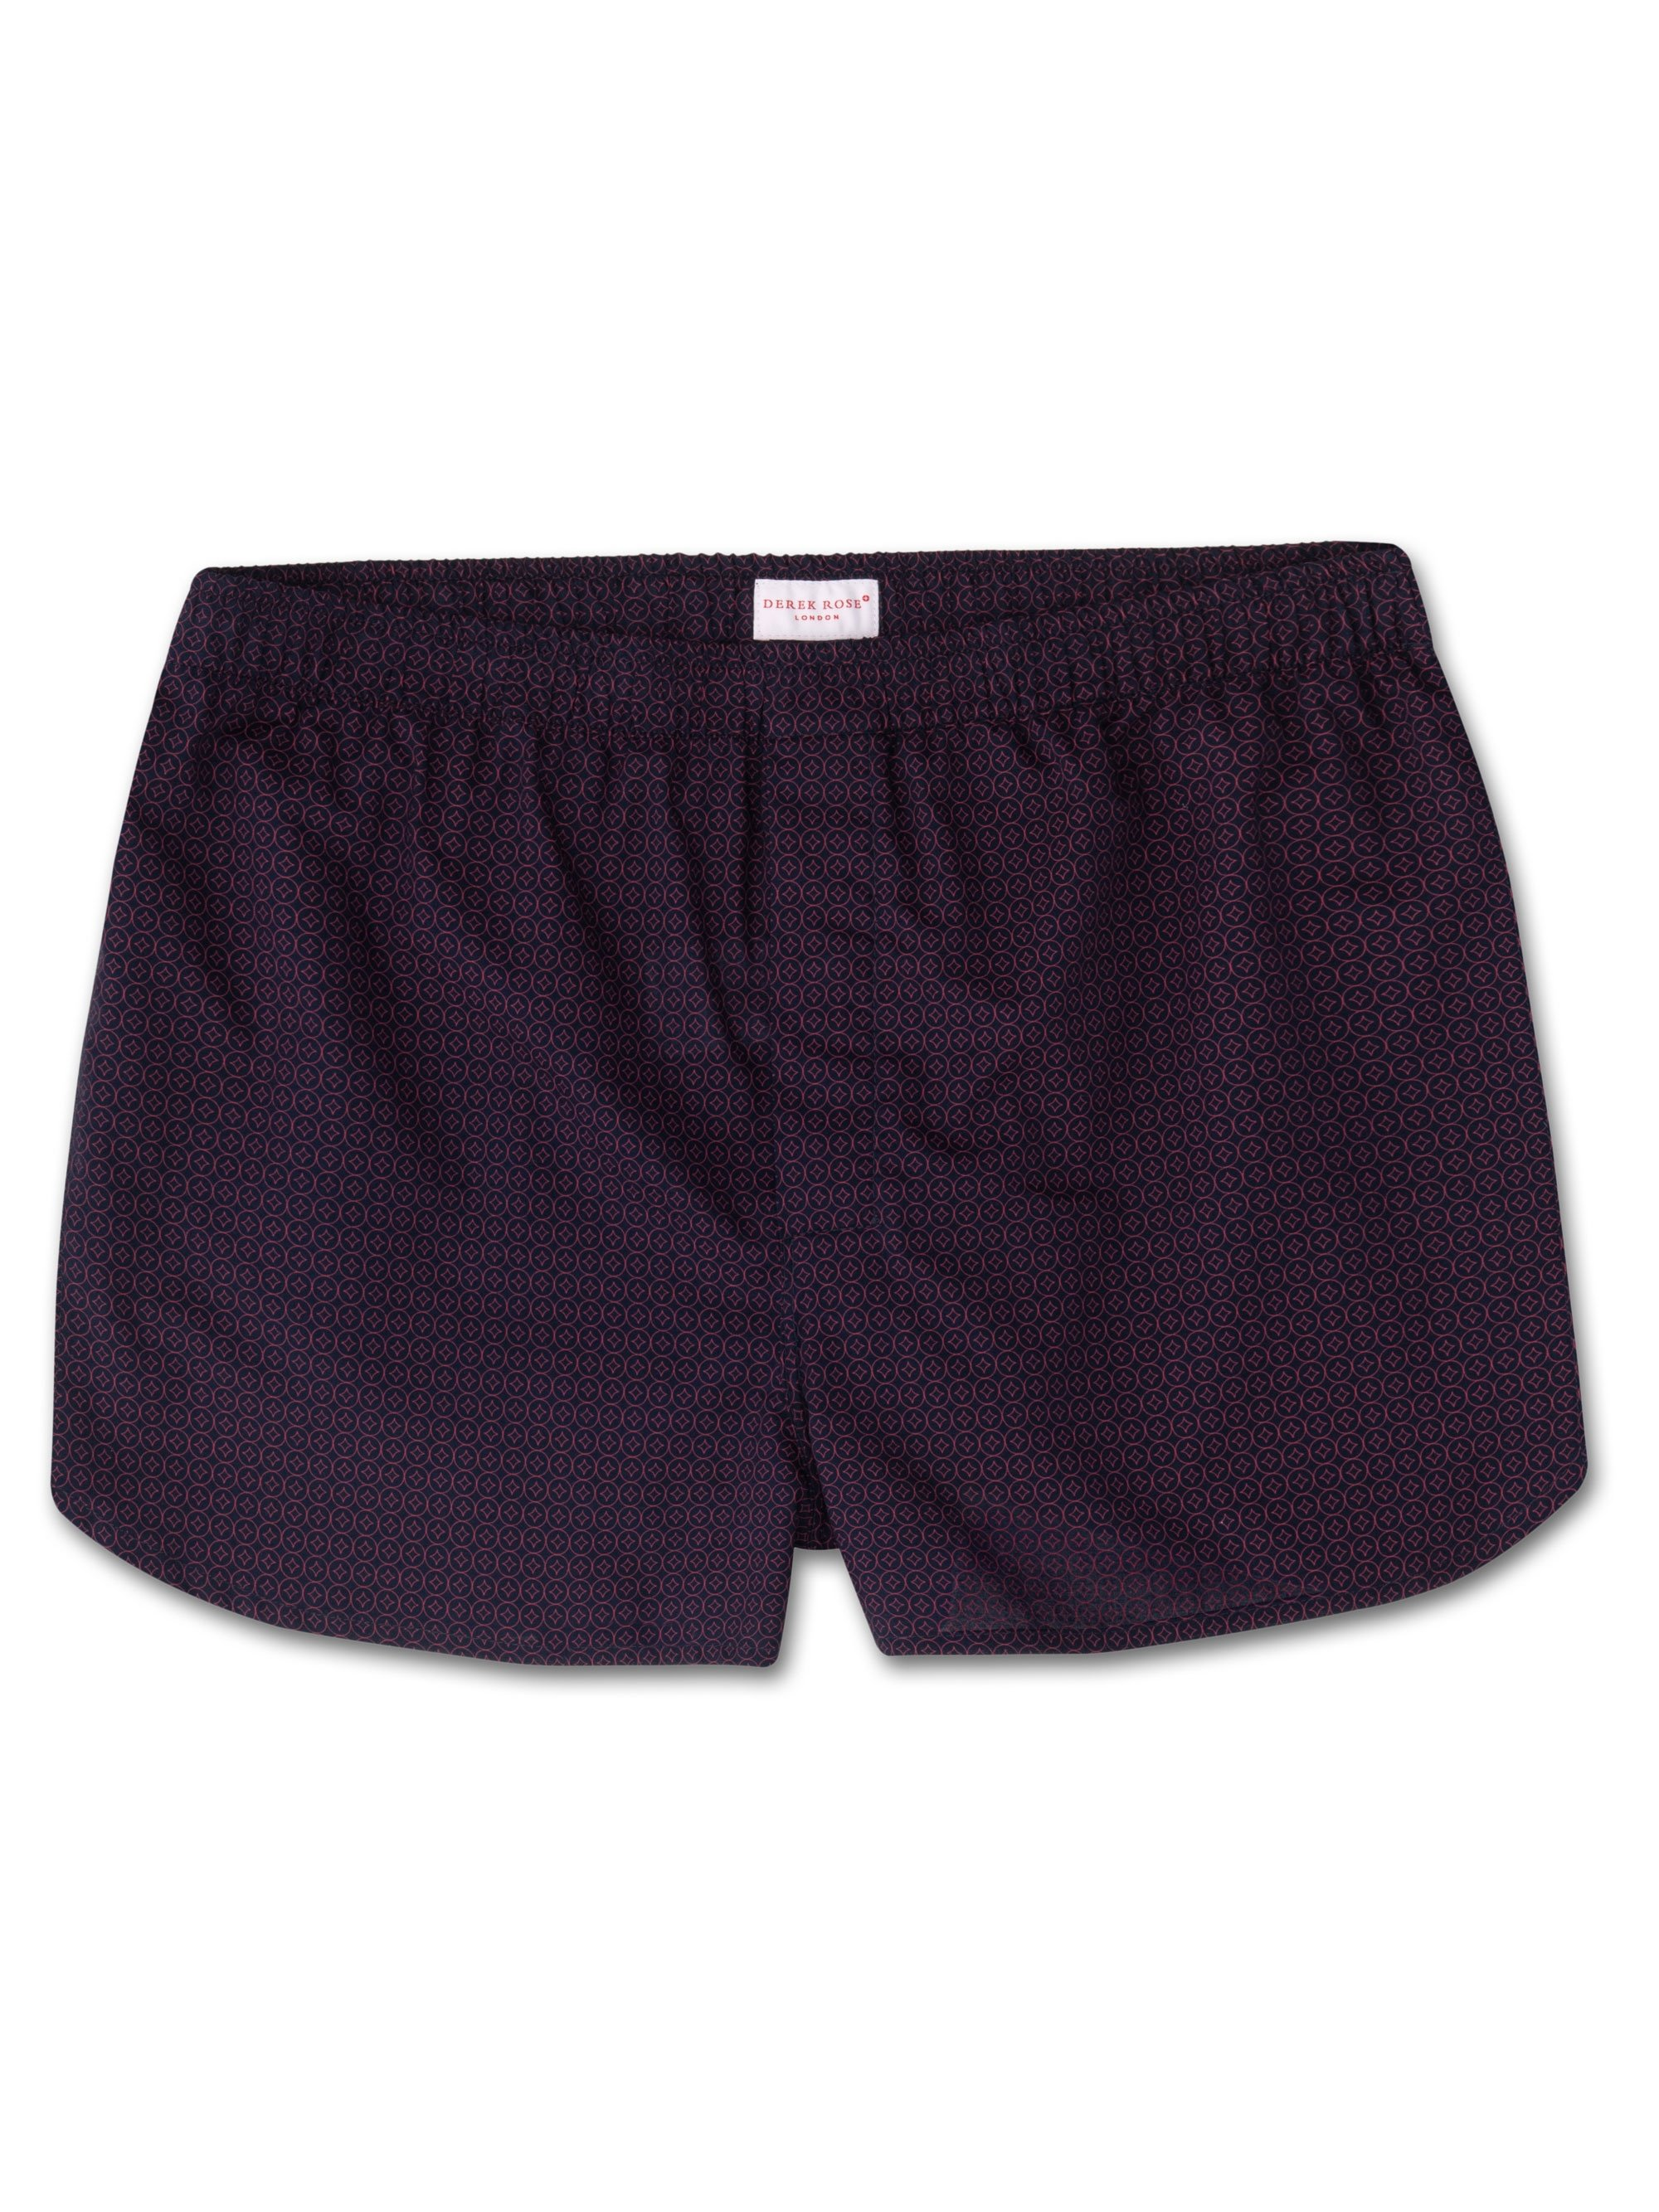 Men's Modern Fit Boxer Shorts Nelson 60 Cotton Batiste Navy